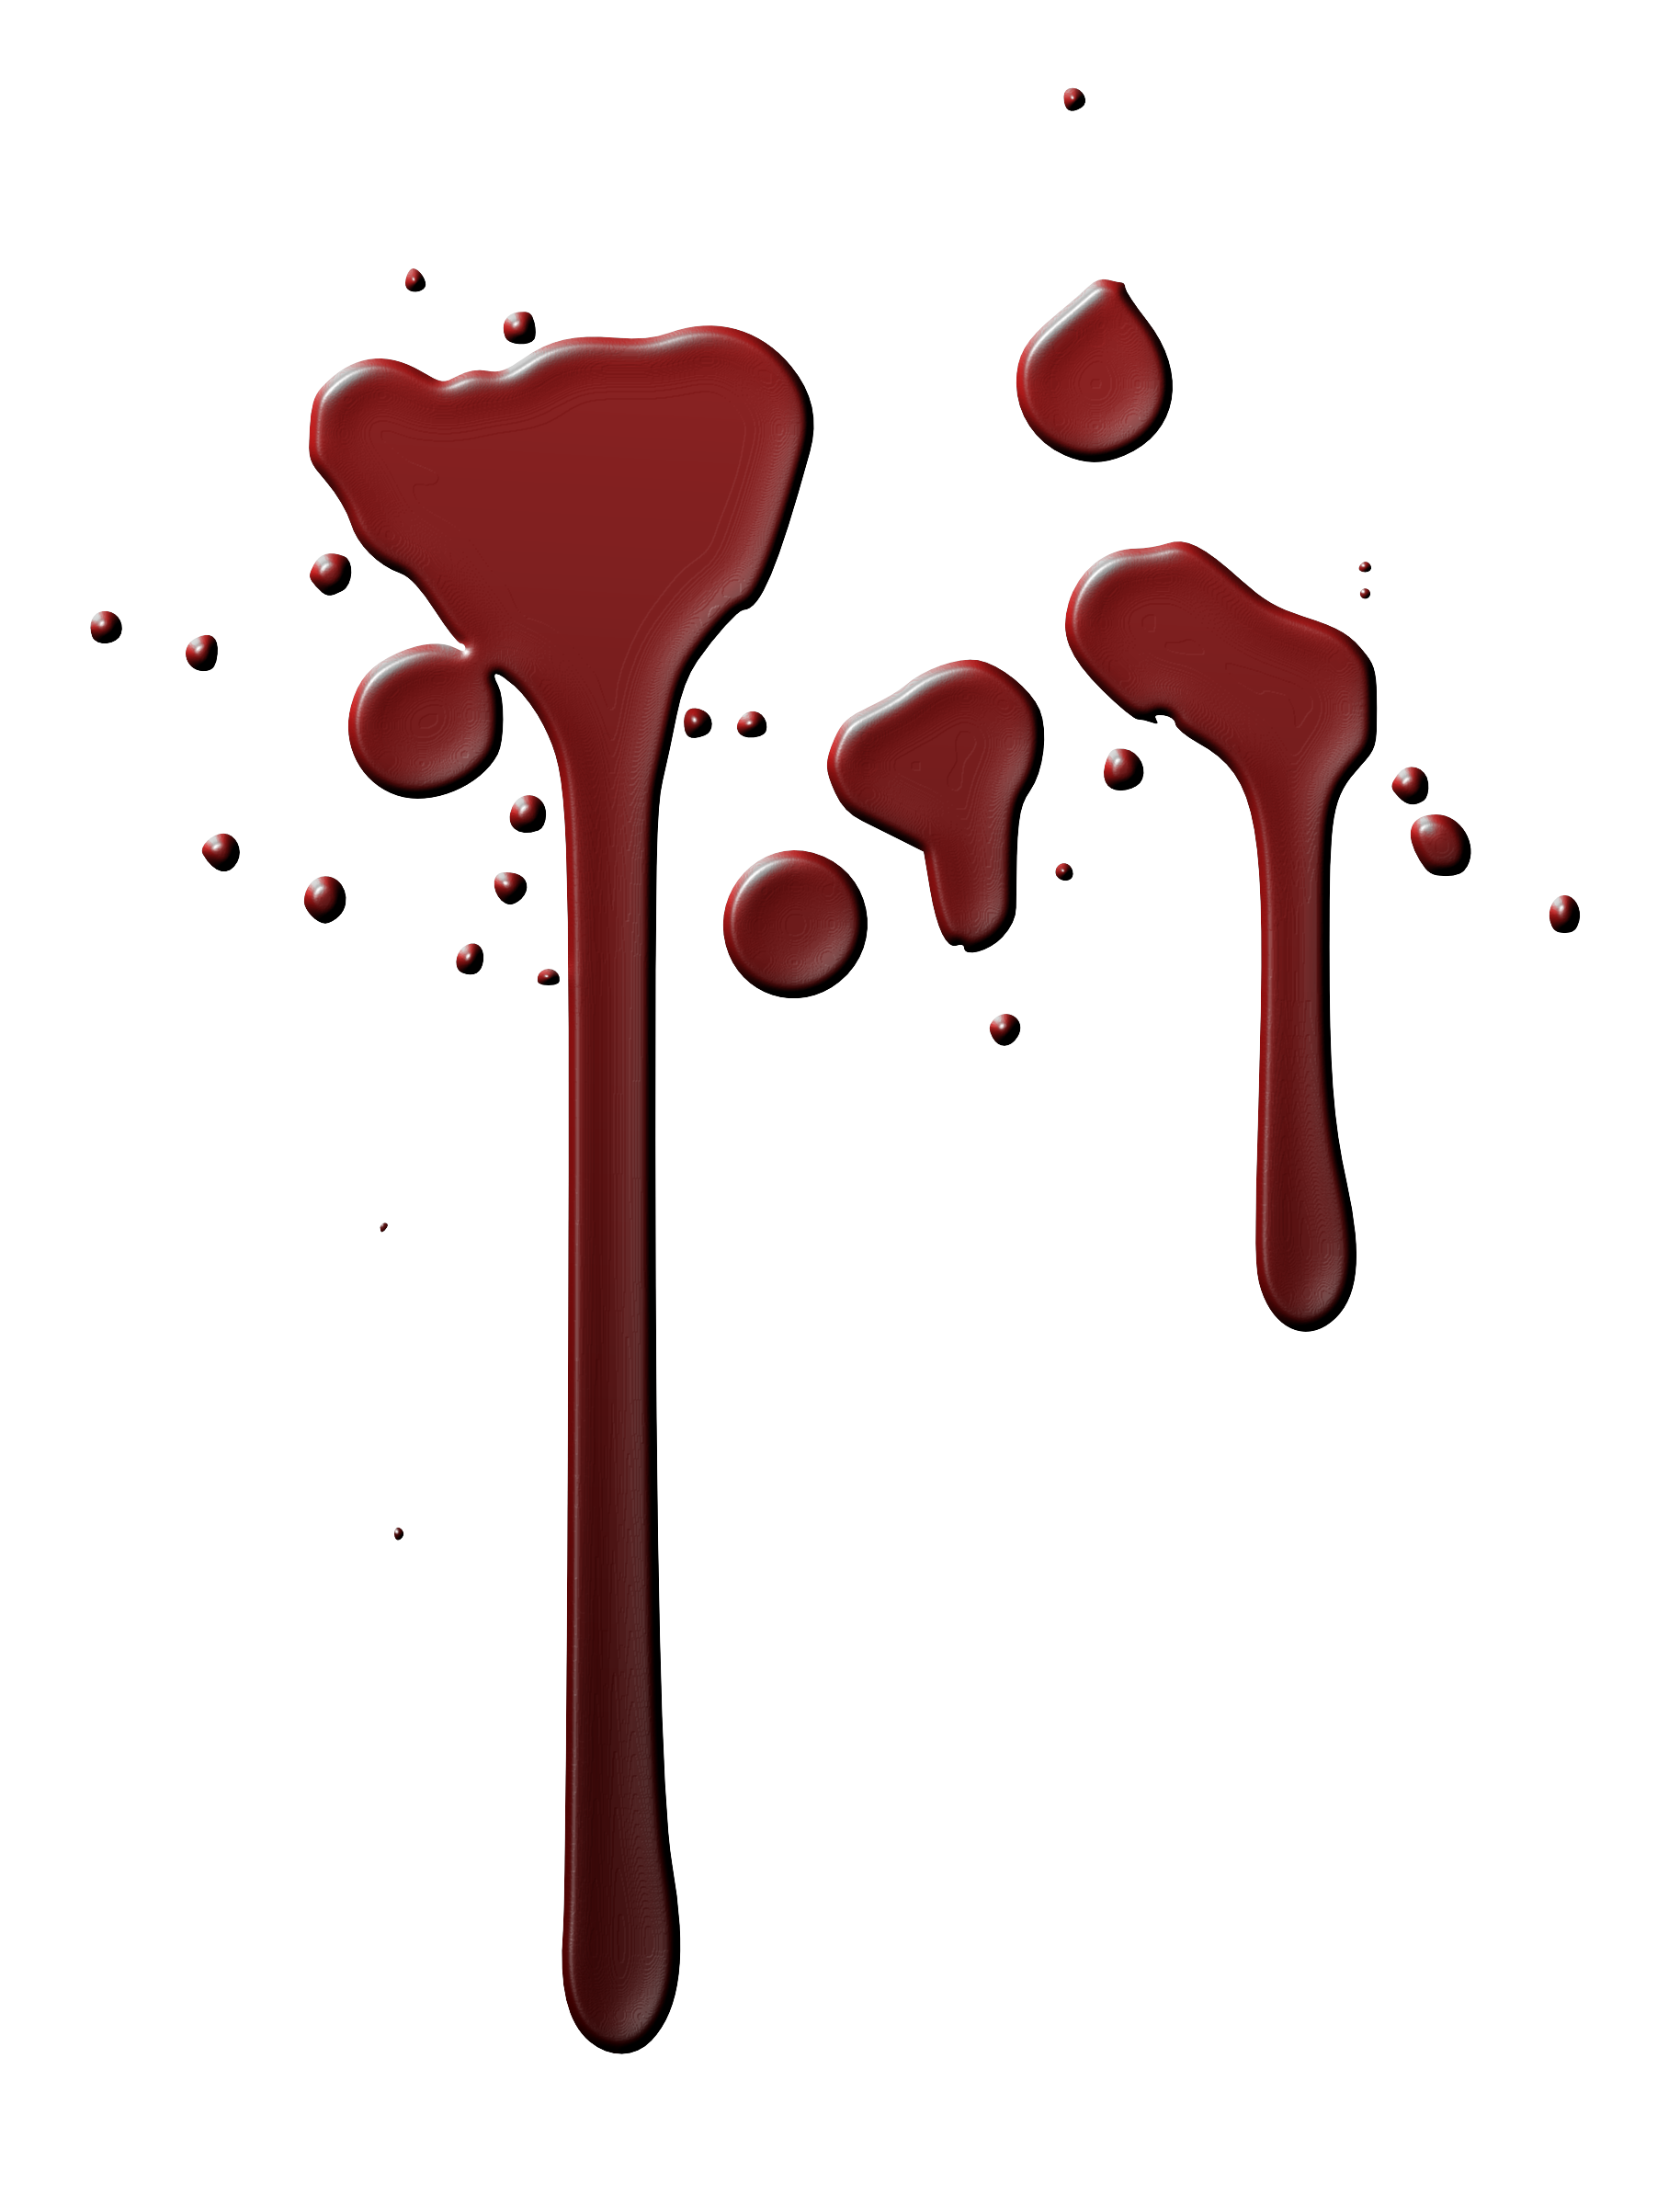 Blood Drops Hd Png image #7155